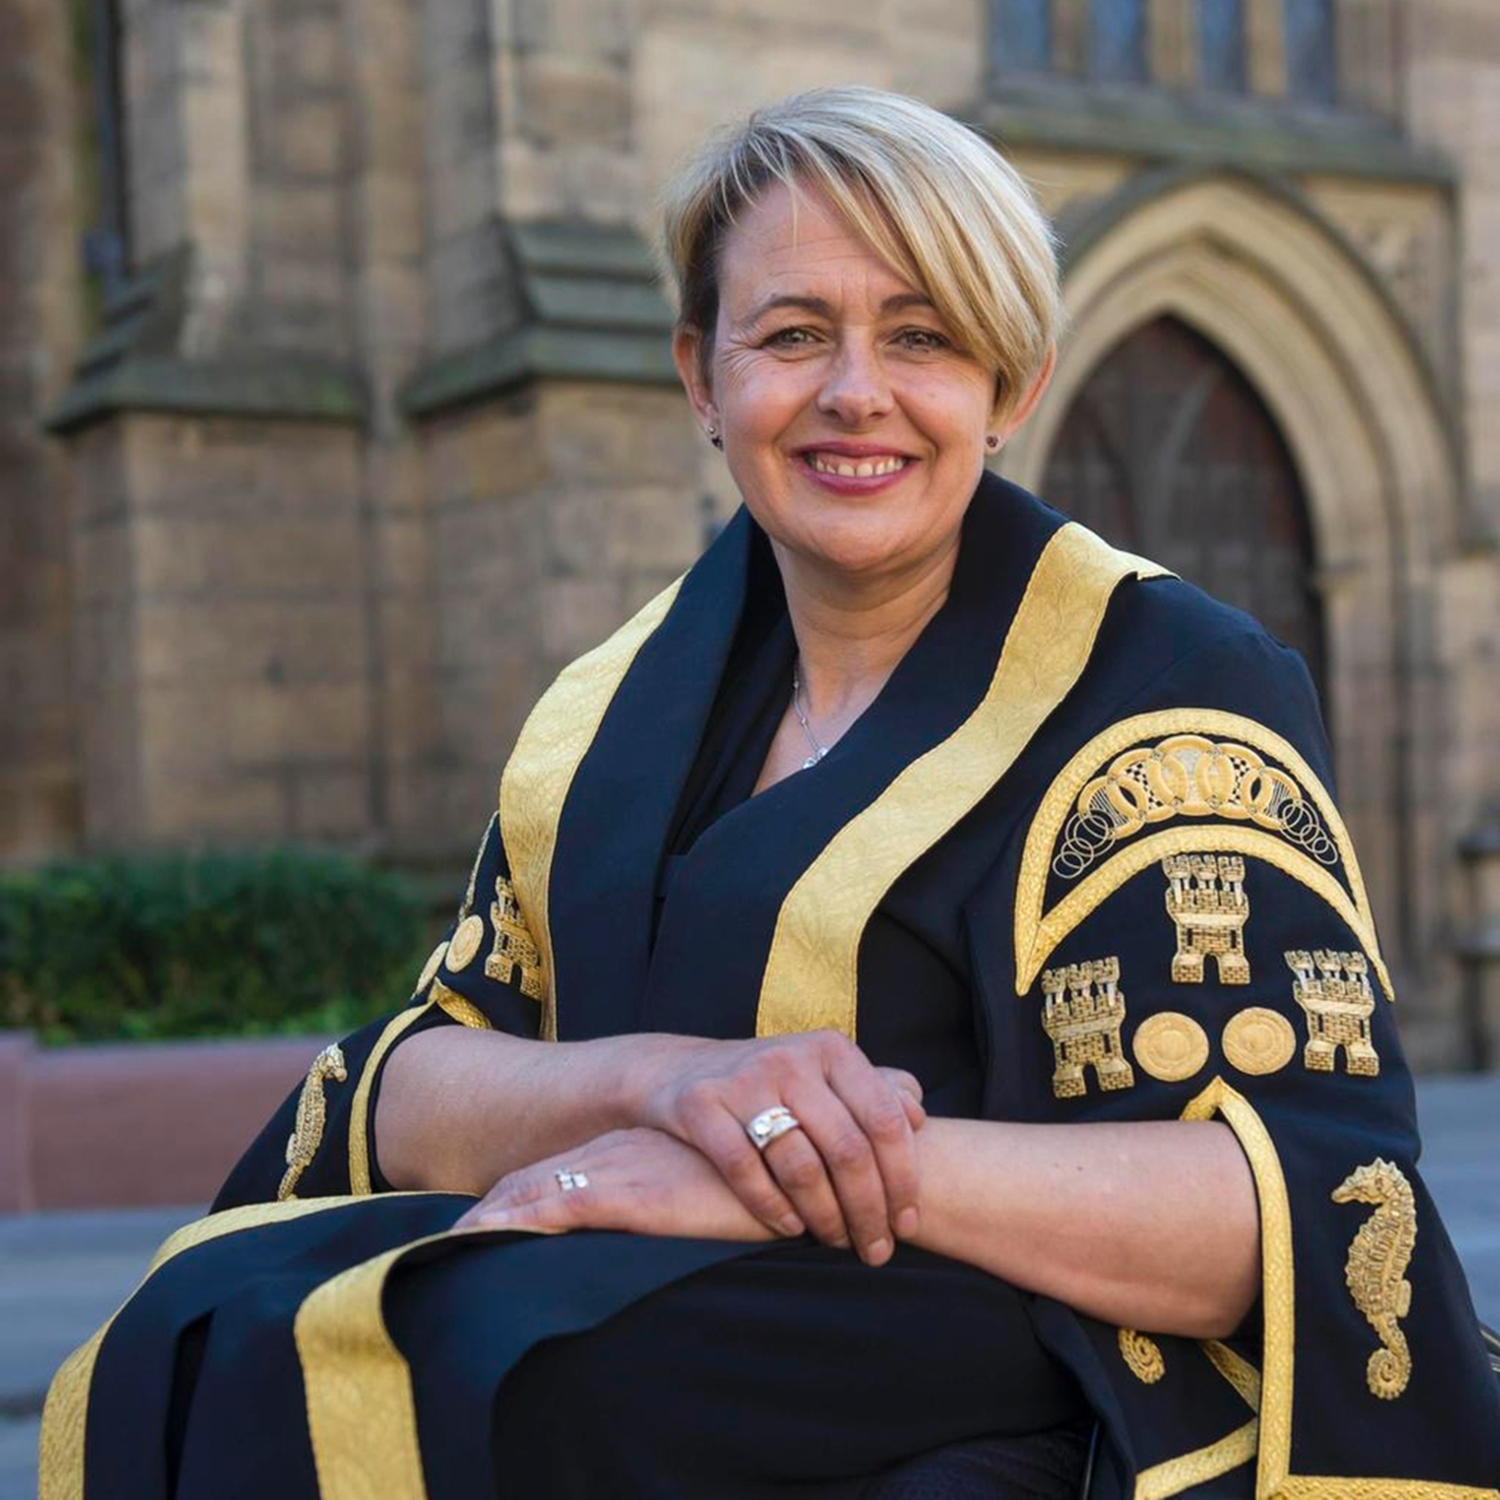 Episode 21: Tanni Grey-Thompson - Changing the world for disabled people